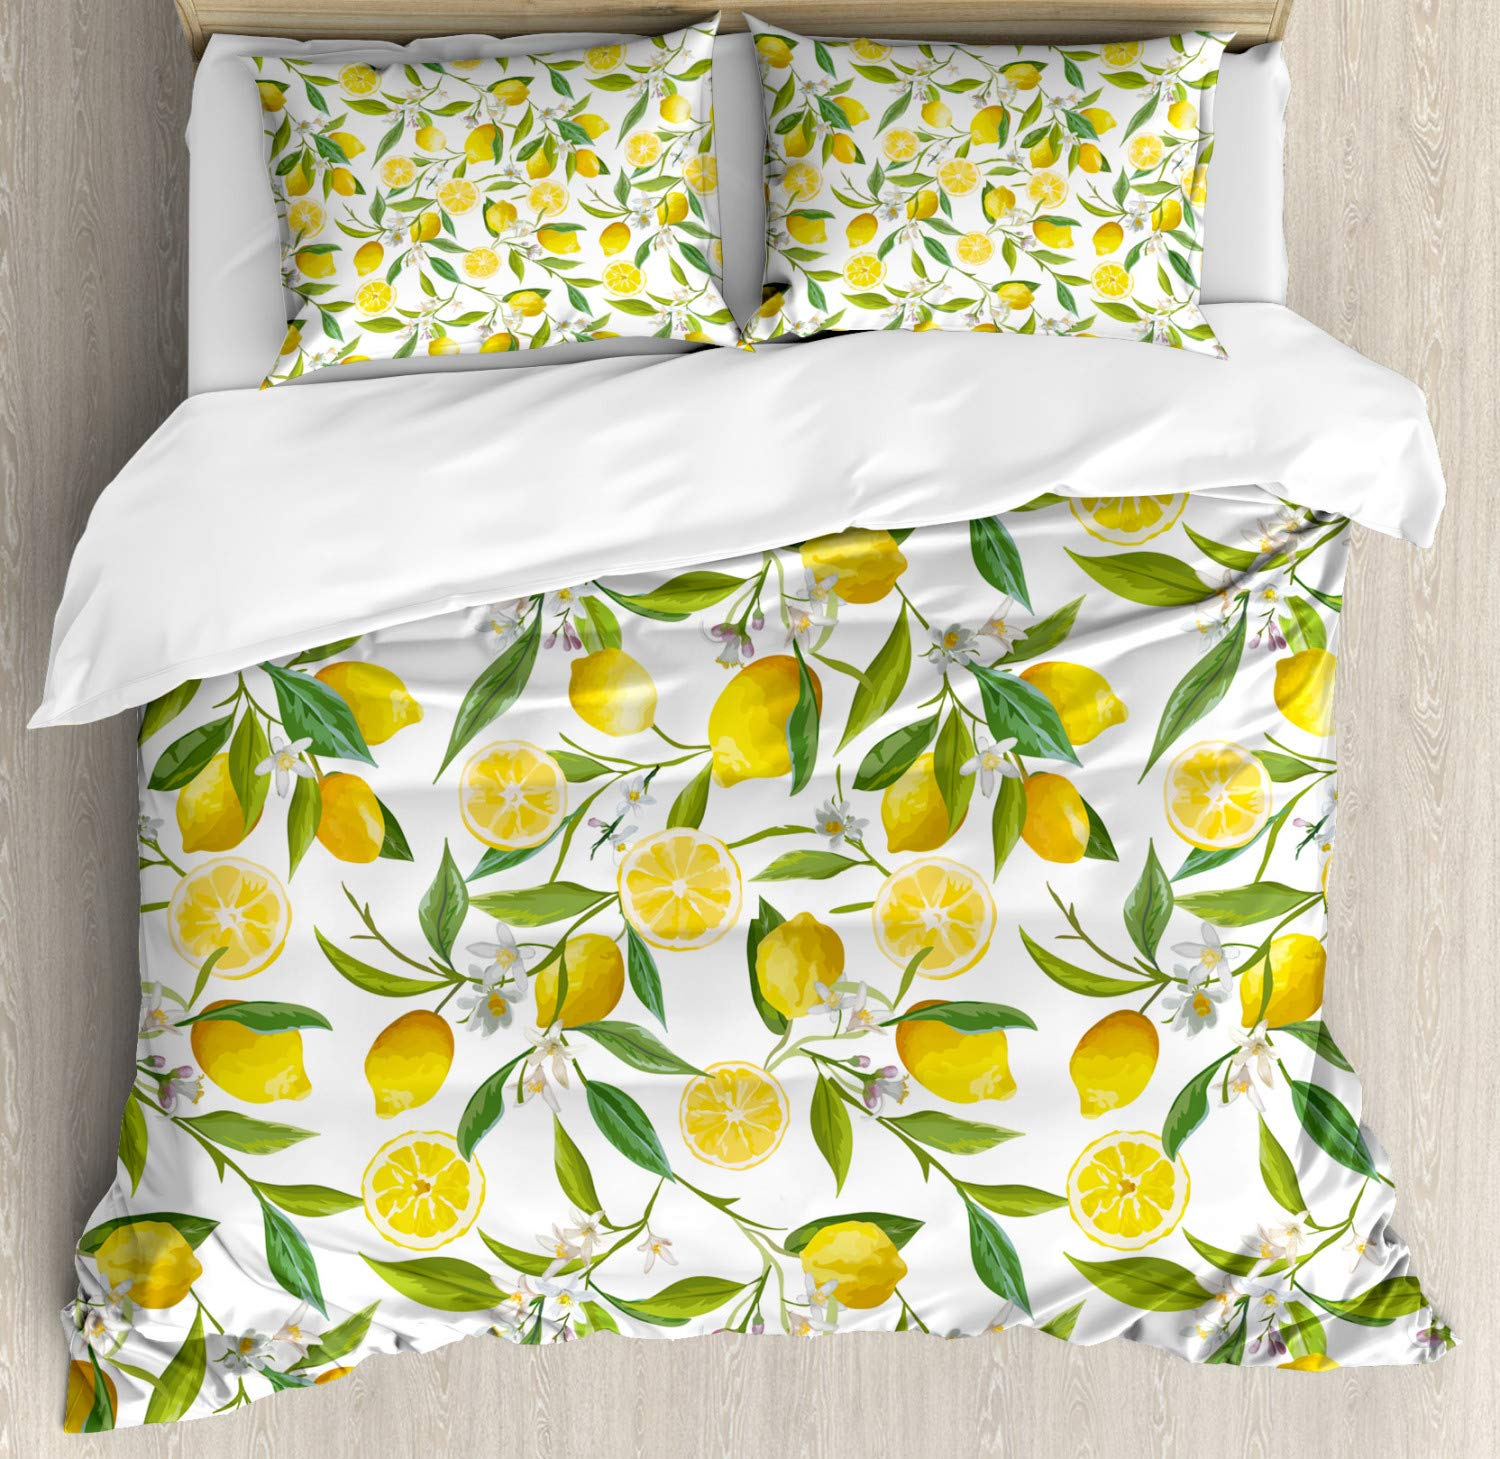 Ambesonne Nature Duvet Cover Set, Exotic Lemon Tree Branches Yummy Delicious Kitchen Gardening Design, 3 Piece Bedding Set with Pillow Shams, Queen/Full, Fern Green Yellow White